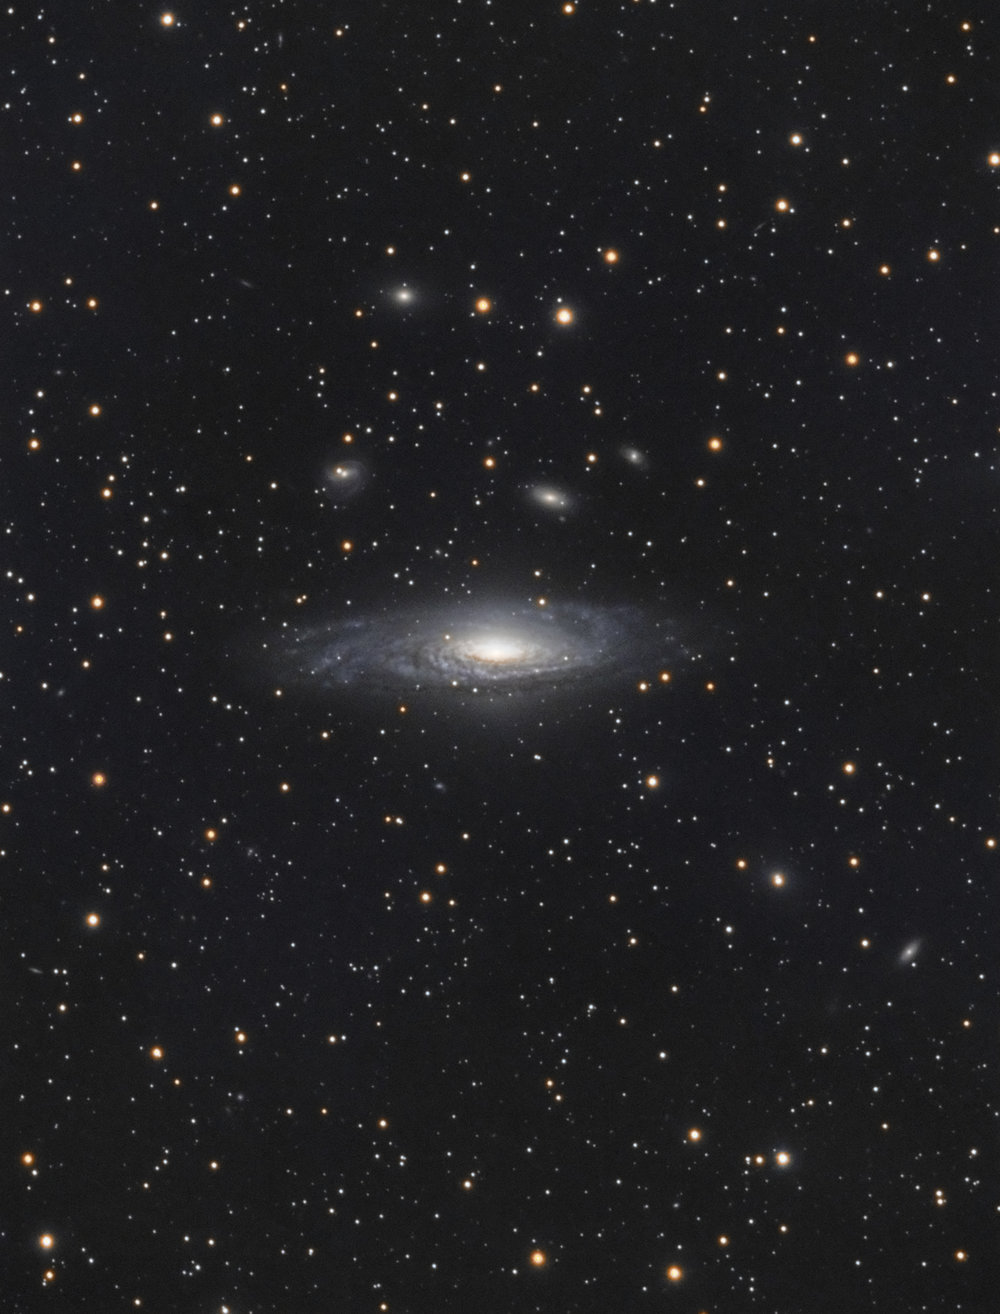 Deer Lick Group - NGC 7331 Group is a group of galaxies in the constellation Pegasus. Spiral galaxy NGC 7331 is the brightest member of the group. This group is also called the Deer Lick Group, and contains four other members; NGC 7335, NGC 7336, NGC 7337 and NGC 7340, affectionately referred to as the